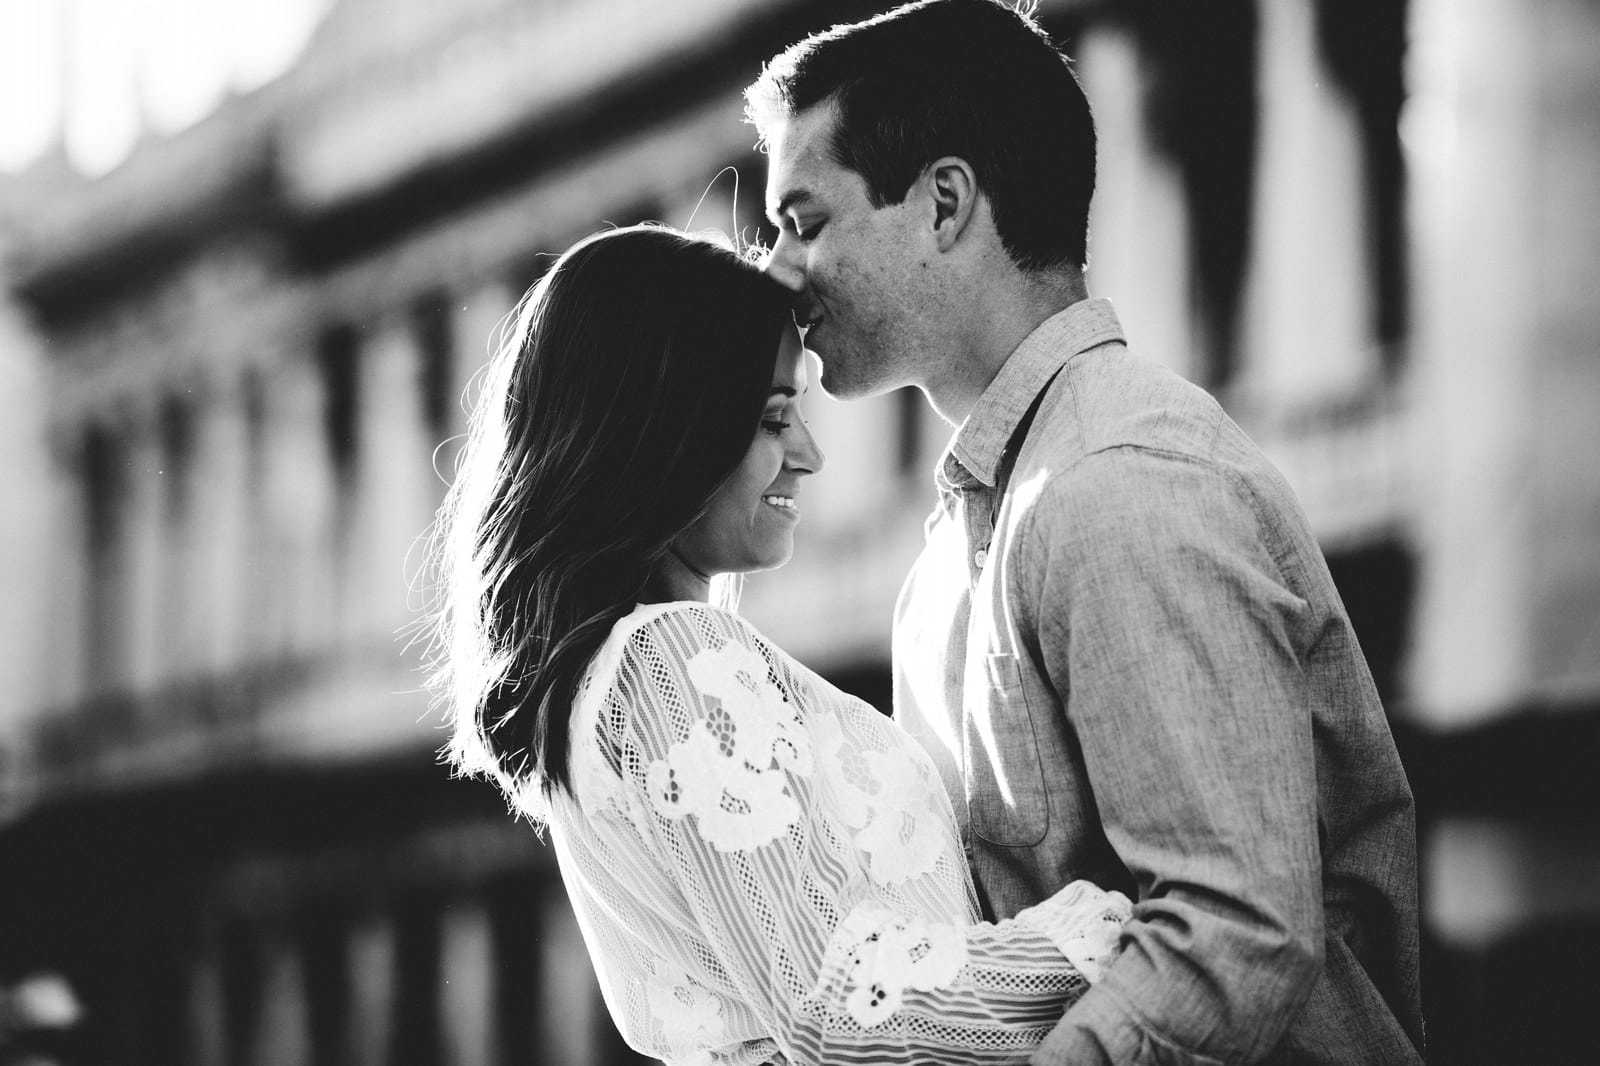 Love shoot venice, Venice engagement shoot, Venice wedding photography,Venice wedding photographer,destination wedding photography Europe